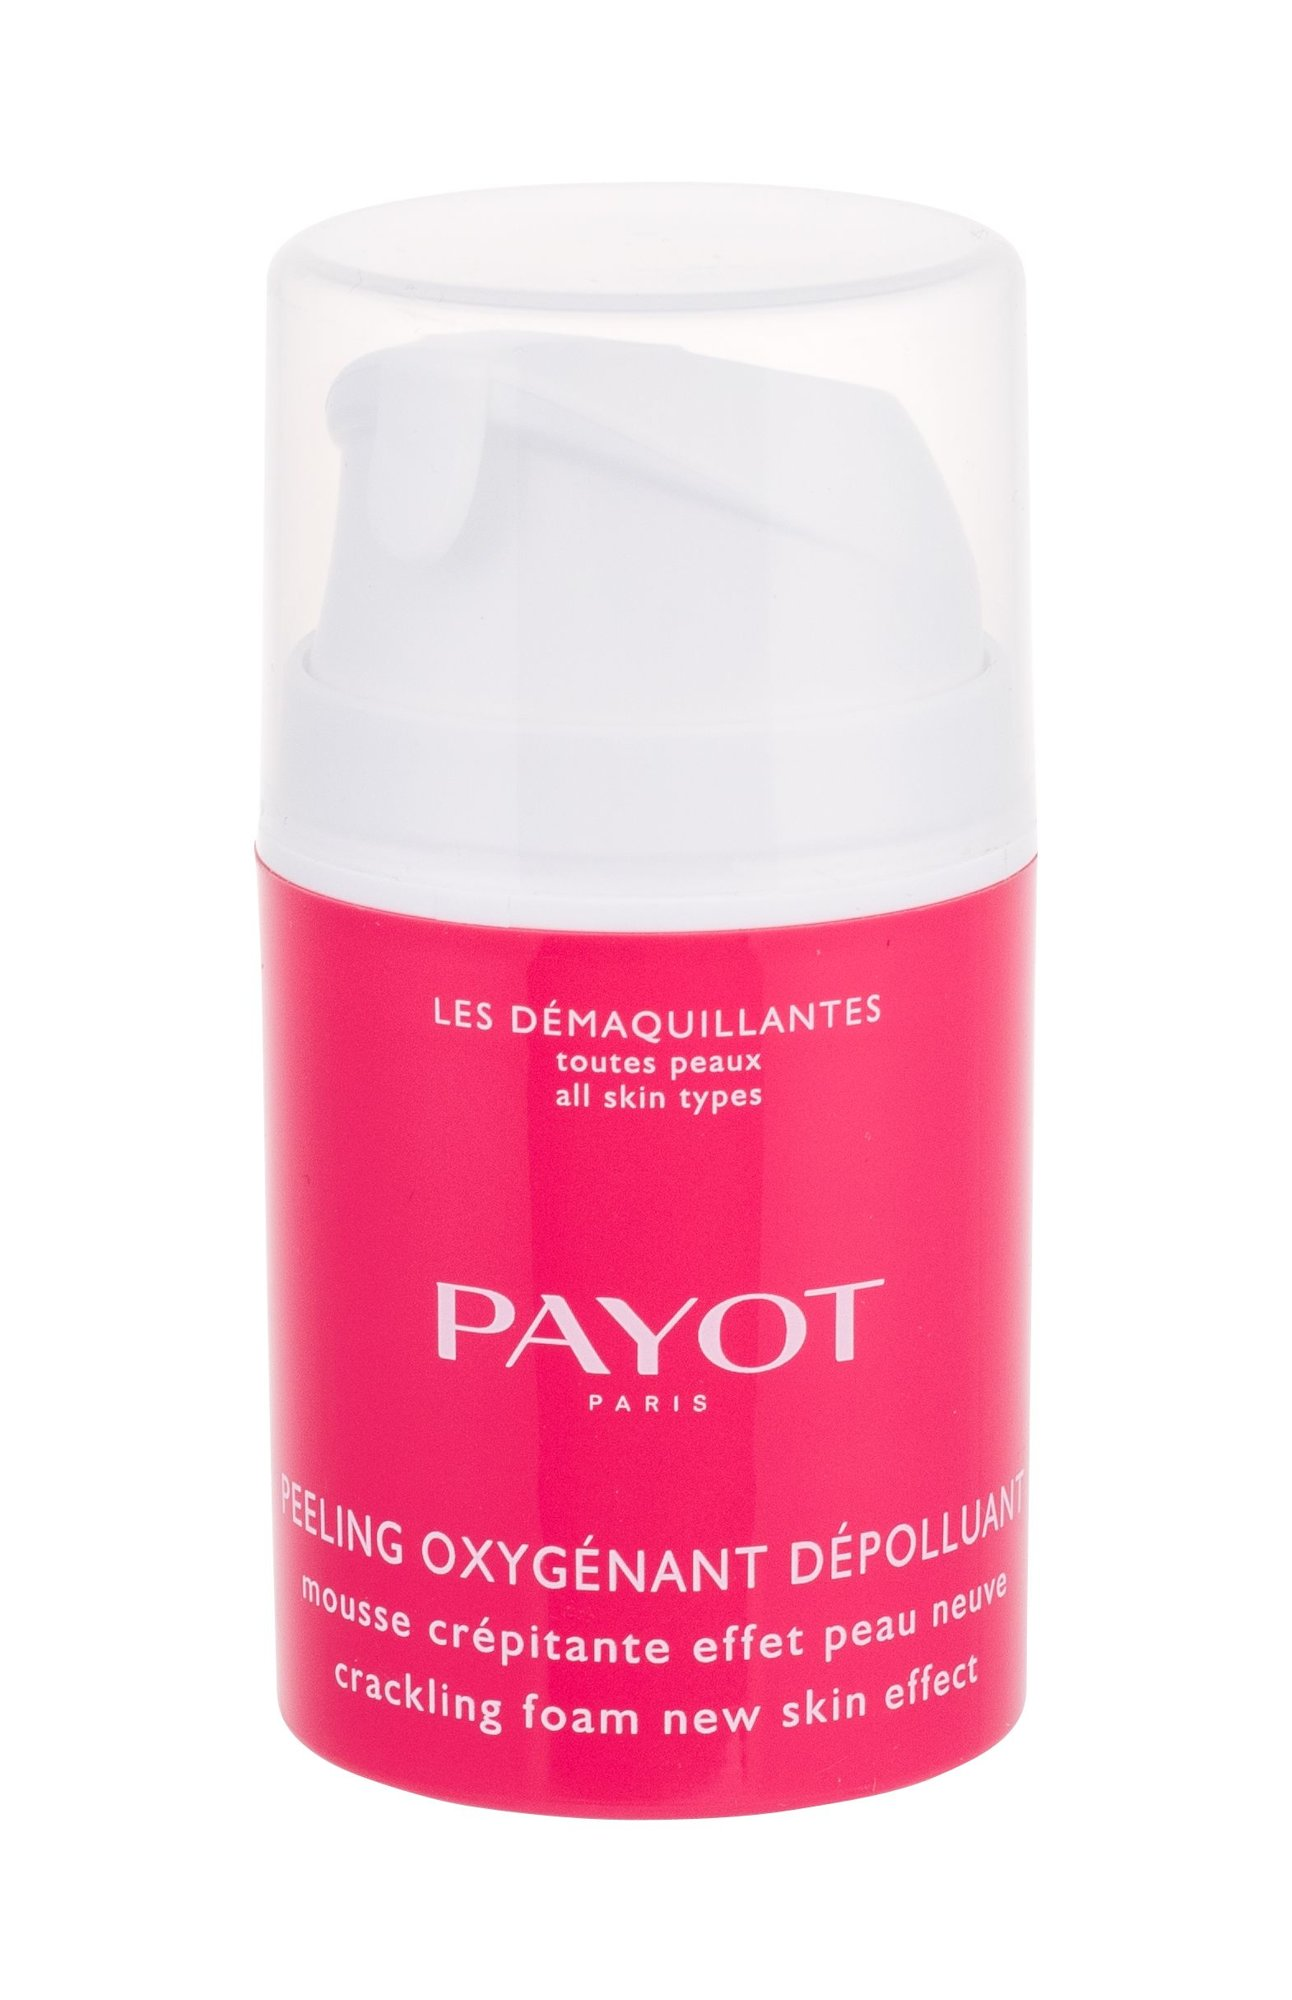 PAYOT Les Démaquillantes Cosmetic 40ml